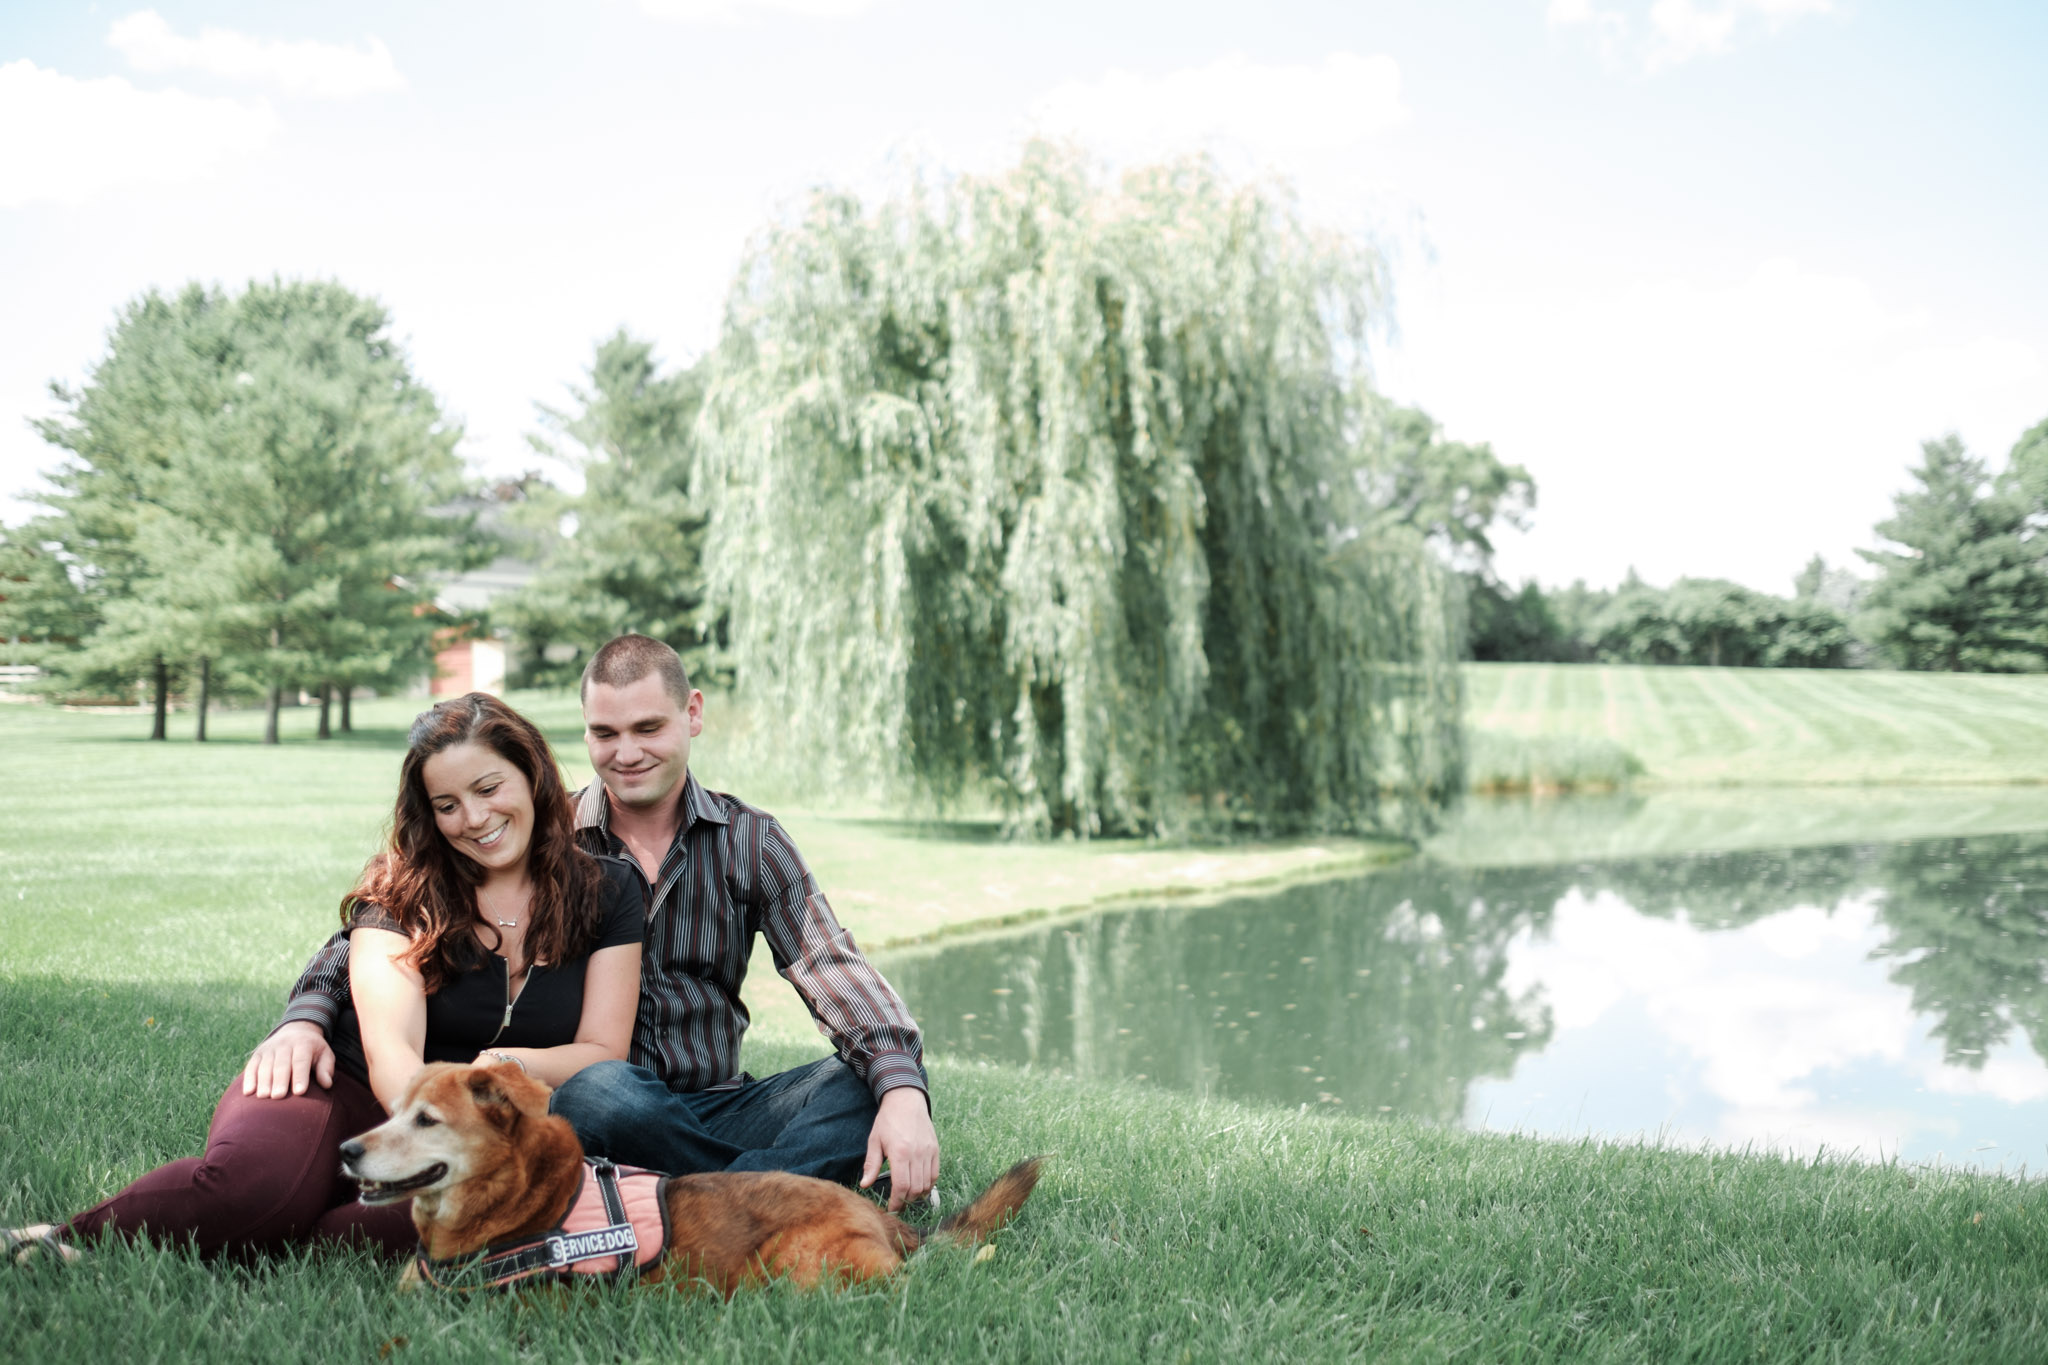 Couple sits with their dog during engagement session at The Pavilion at Orchard Ridge Farms in front of pond with willow tree behind them.